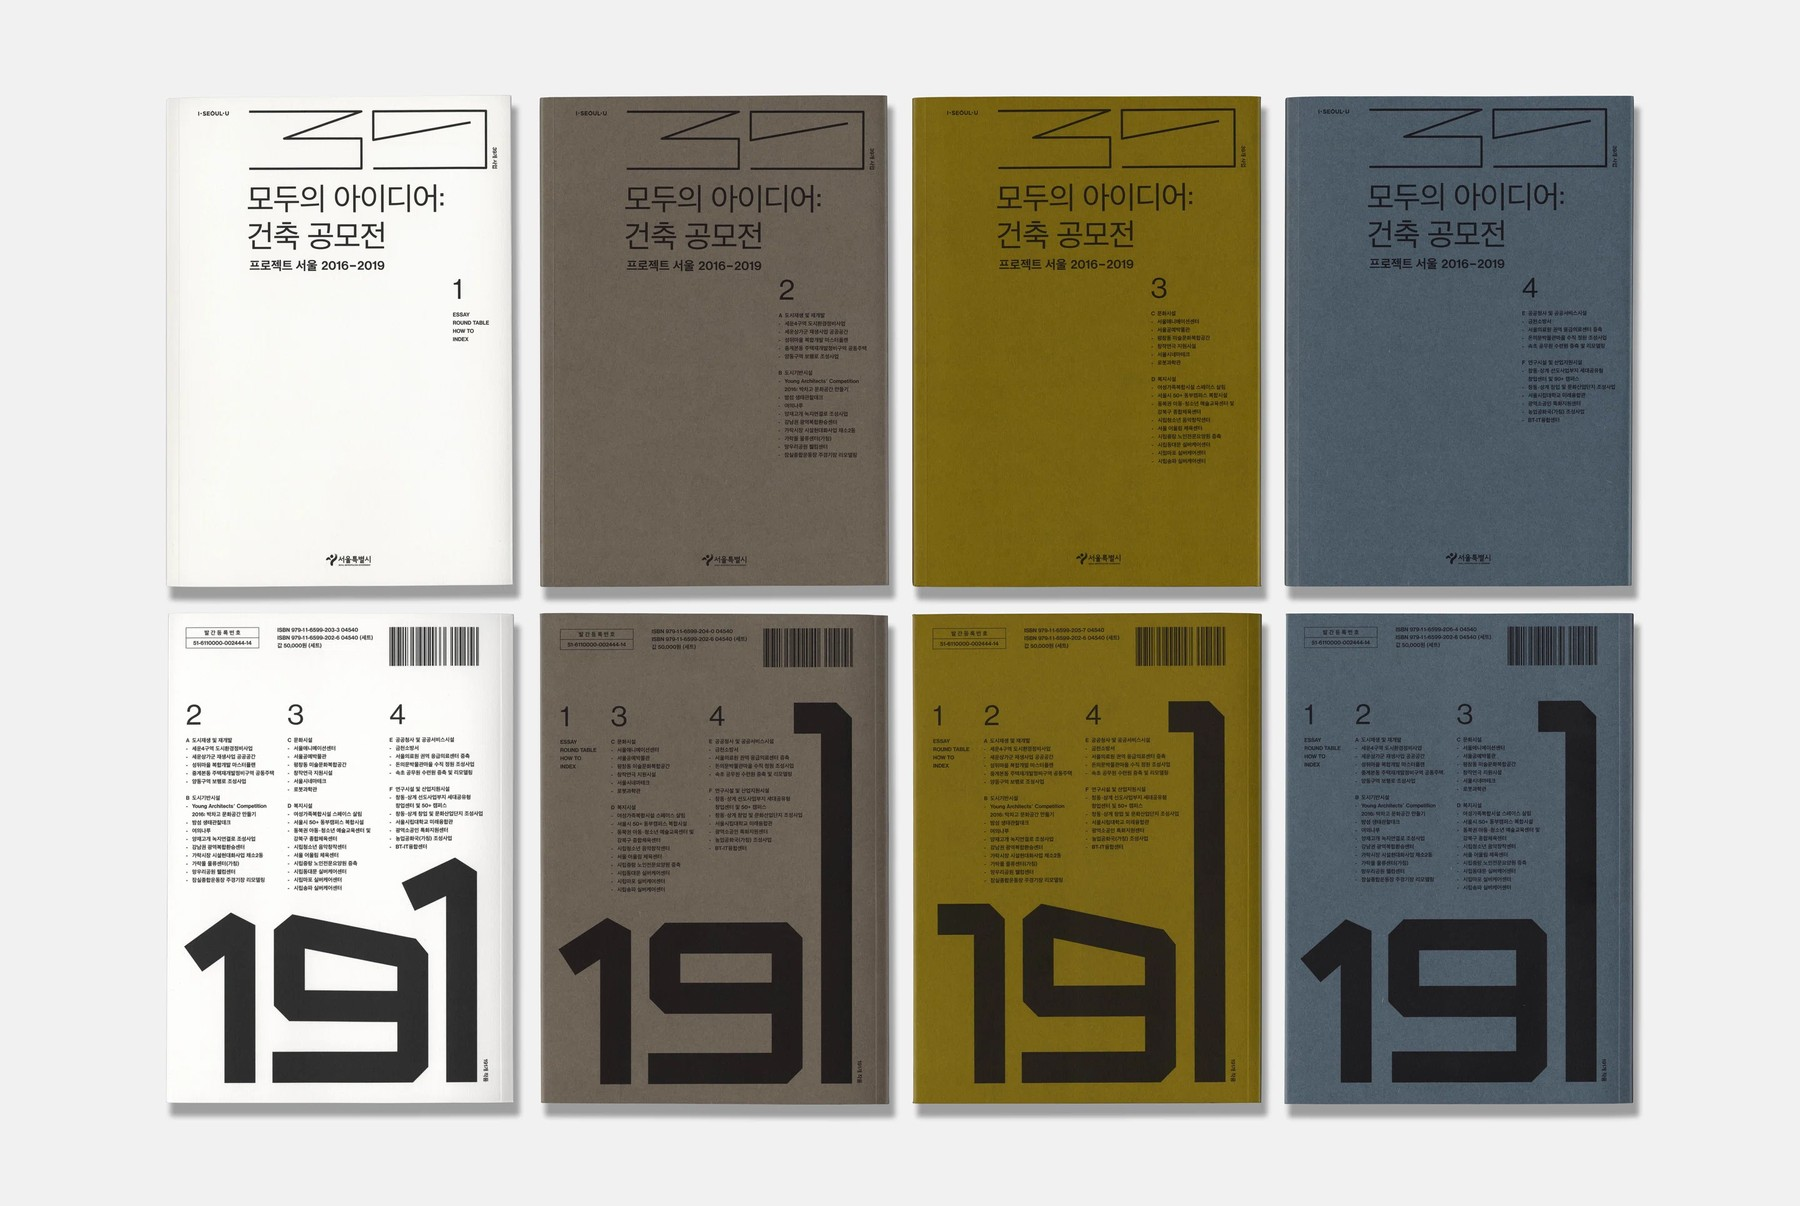 hayoung_im_graphic_design_itsnicethat_1-3.jpeg